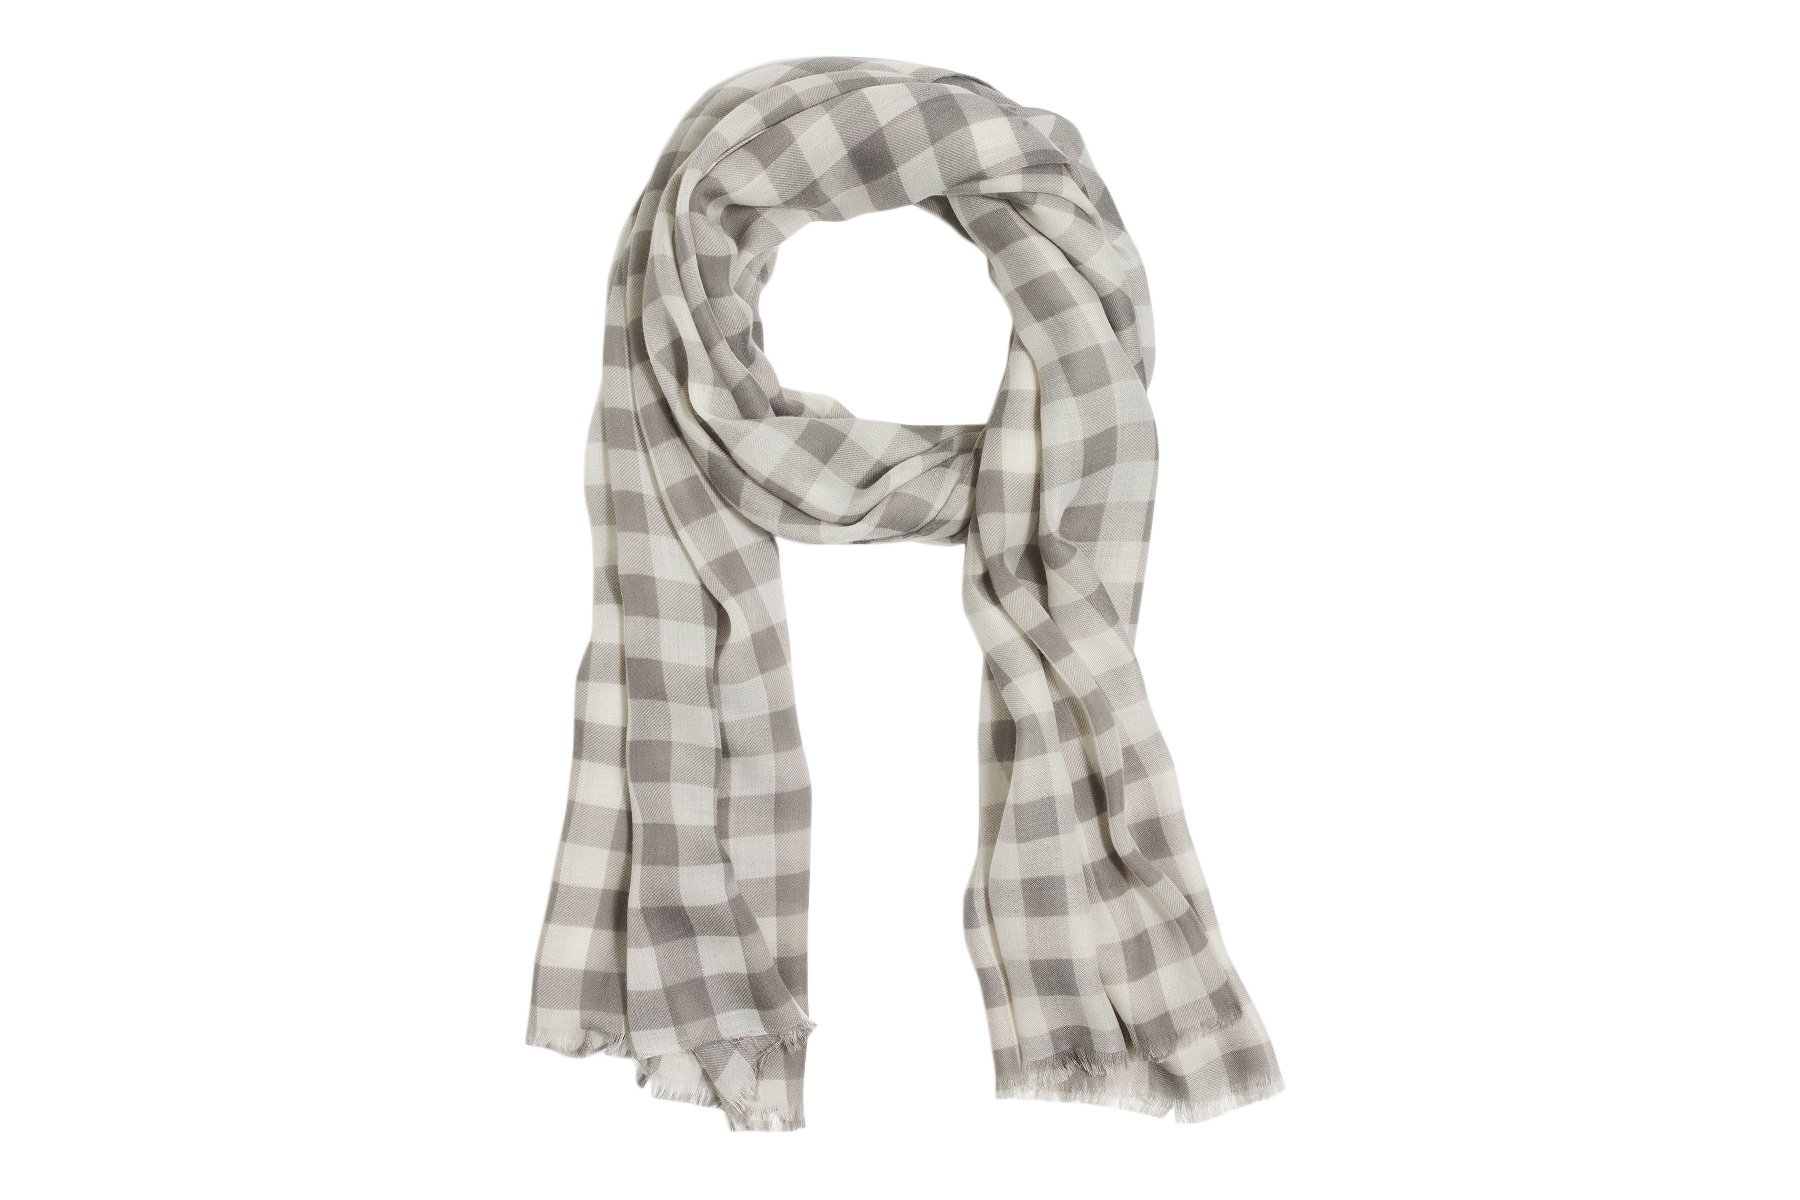 Printed Woven Scarf